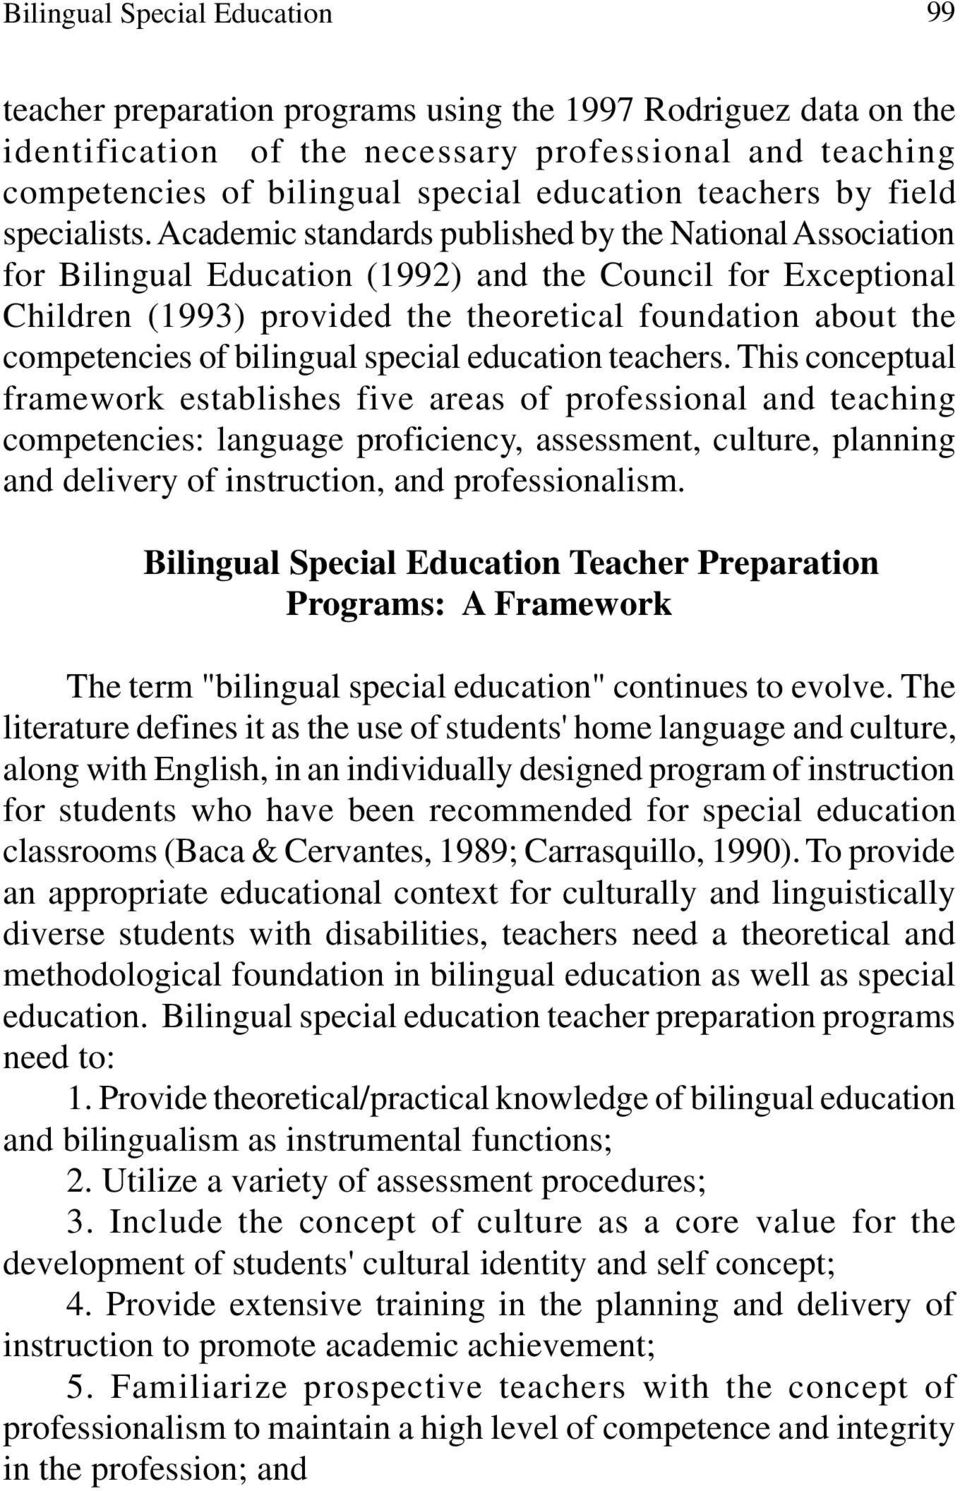 Academic standards published by the National Association for Bilingual Education (1992) and the Council for Exceptional Children (1993) provided the theoretical foundation about the competencies of